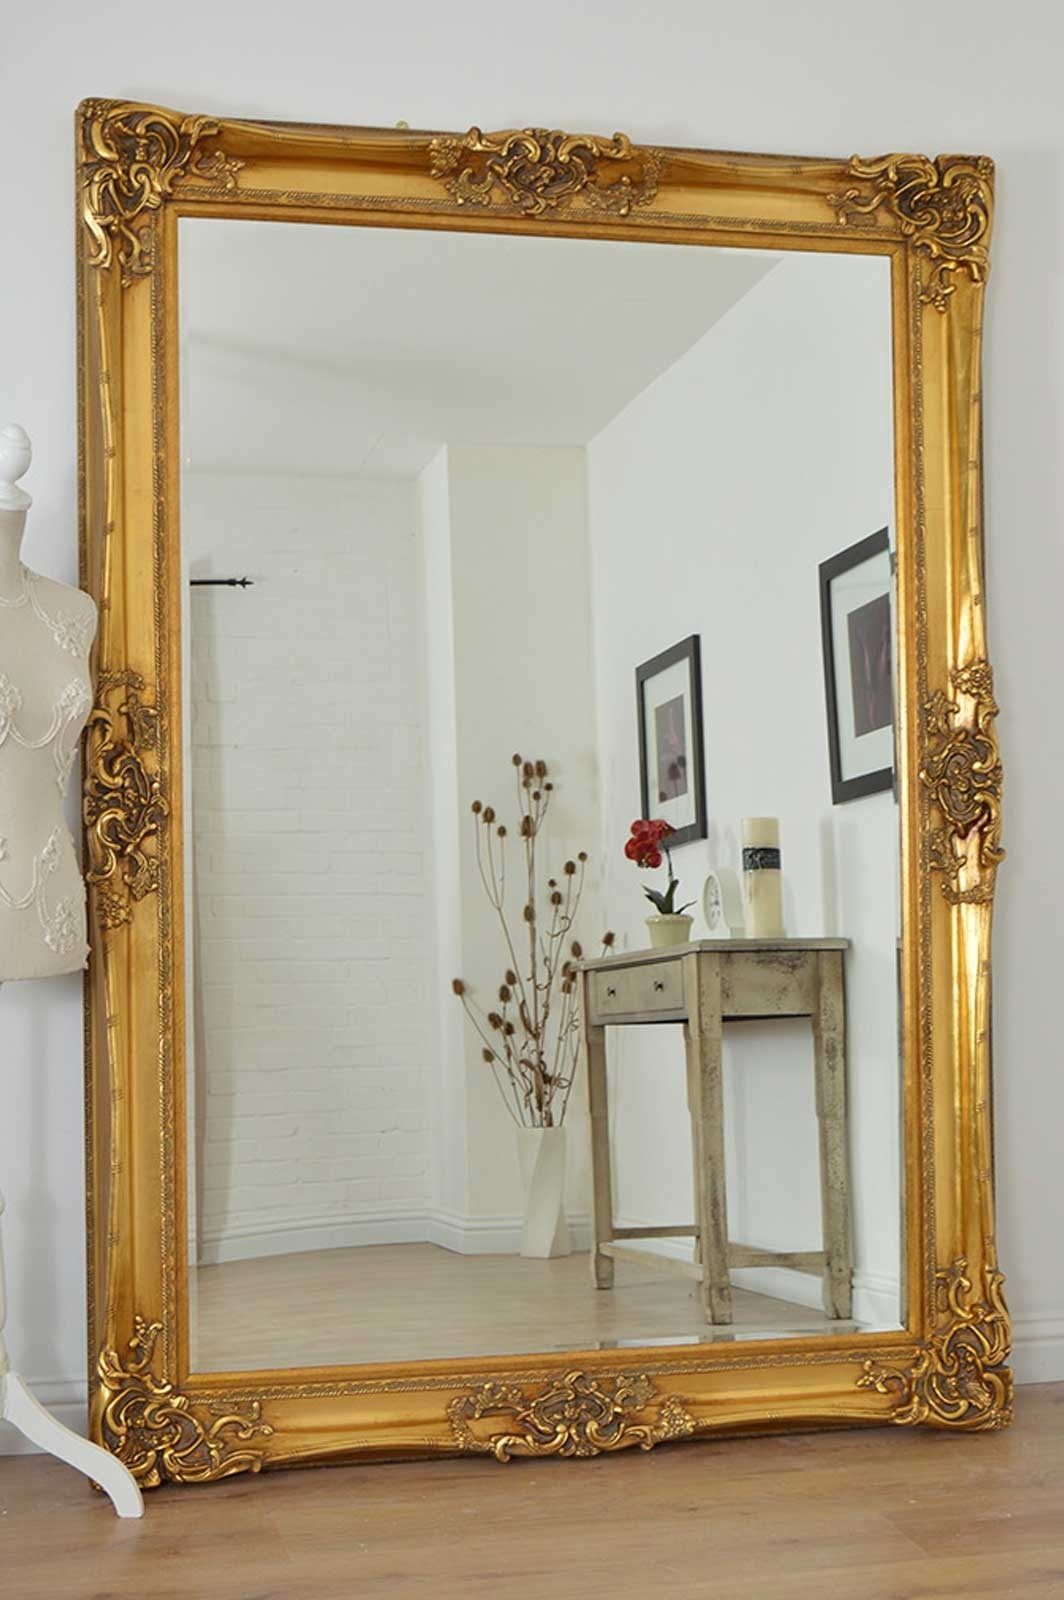 Wall Mirror Gold Frame Wall Mirror Gold Frame large gold very ornate antique design wall mirror 7ft x 5ft 213cm 1064 X 1600